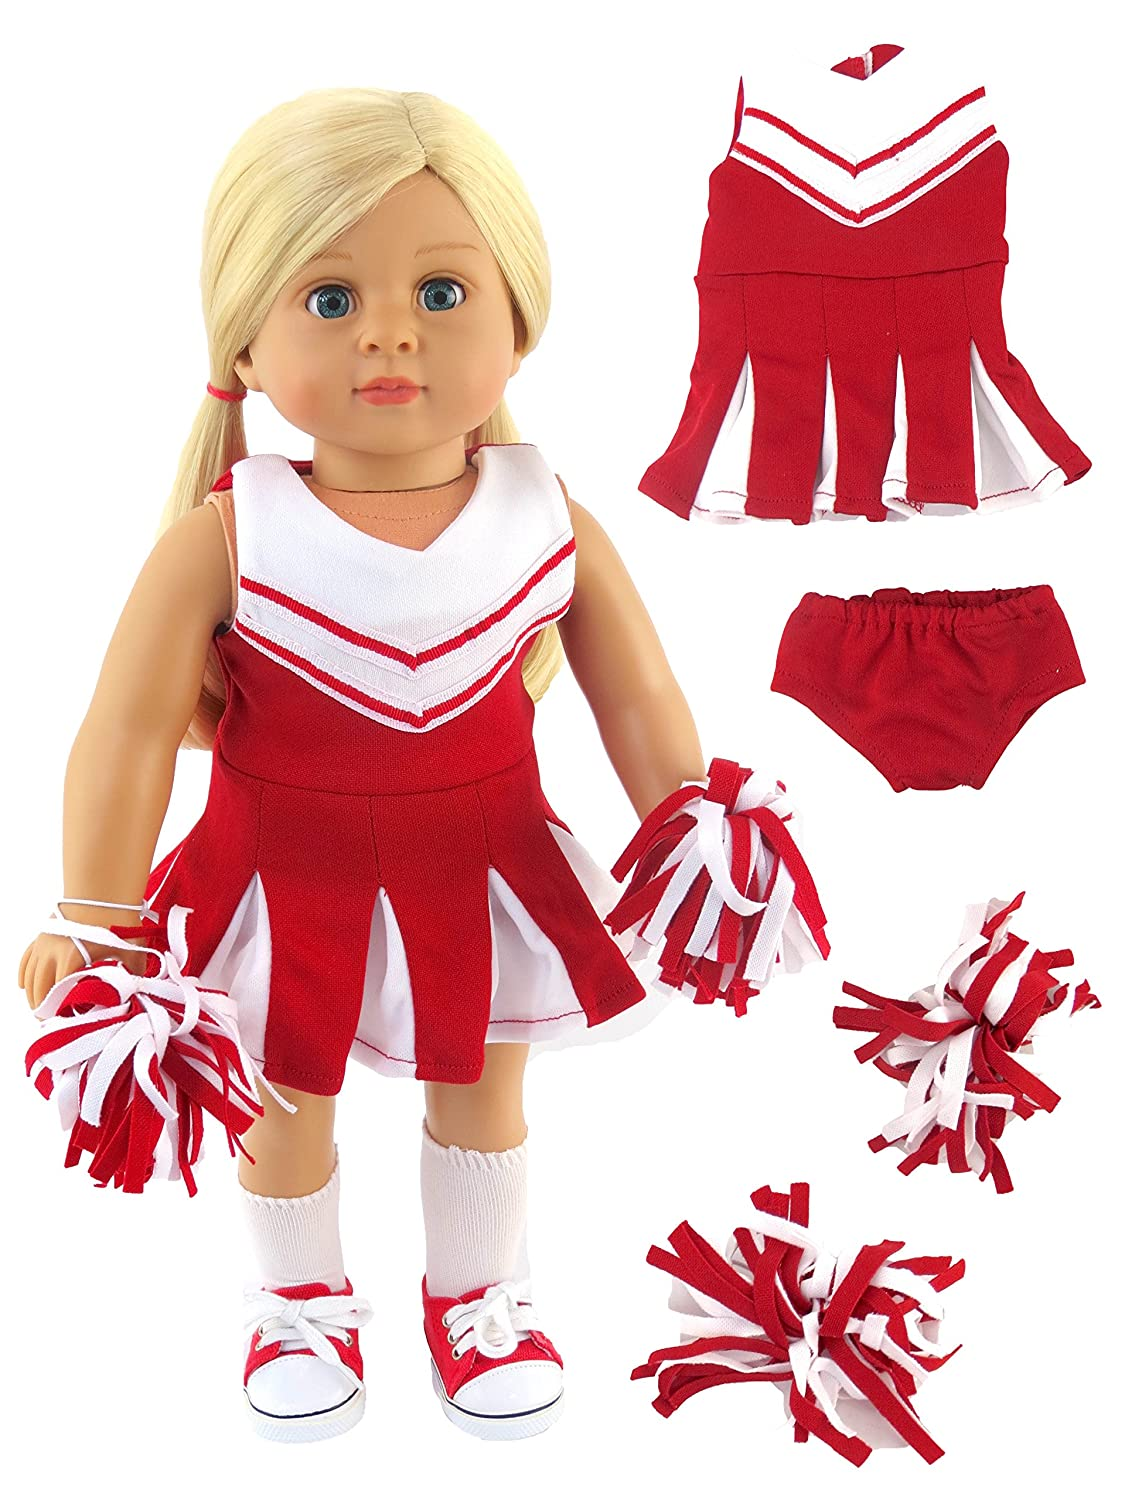 Red and White Doll Cheerleader Outfit | Fits 18 American Girl Dolls Made such as American Girl, Madame Alexander, Our Generation, etc | 18 Inch Doll Clothes | American Fashion World